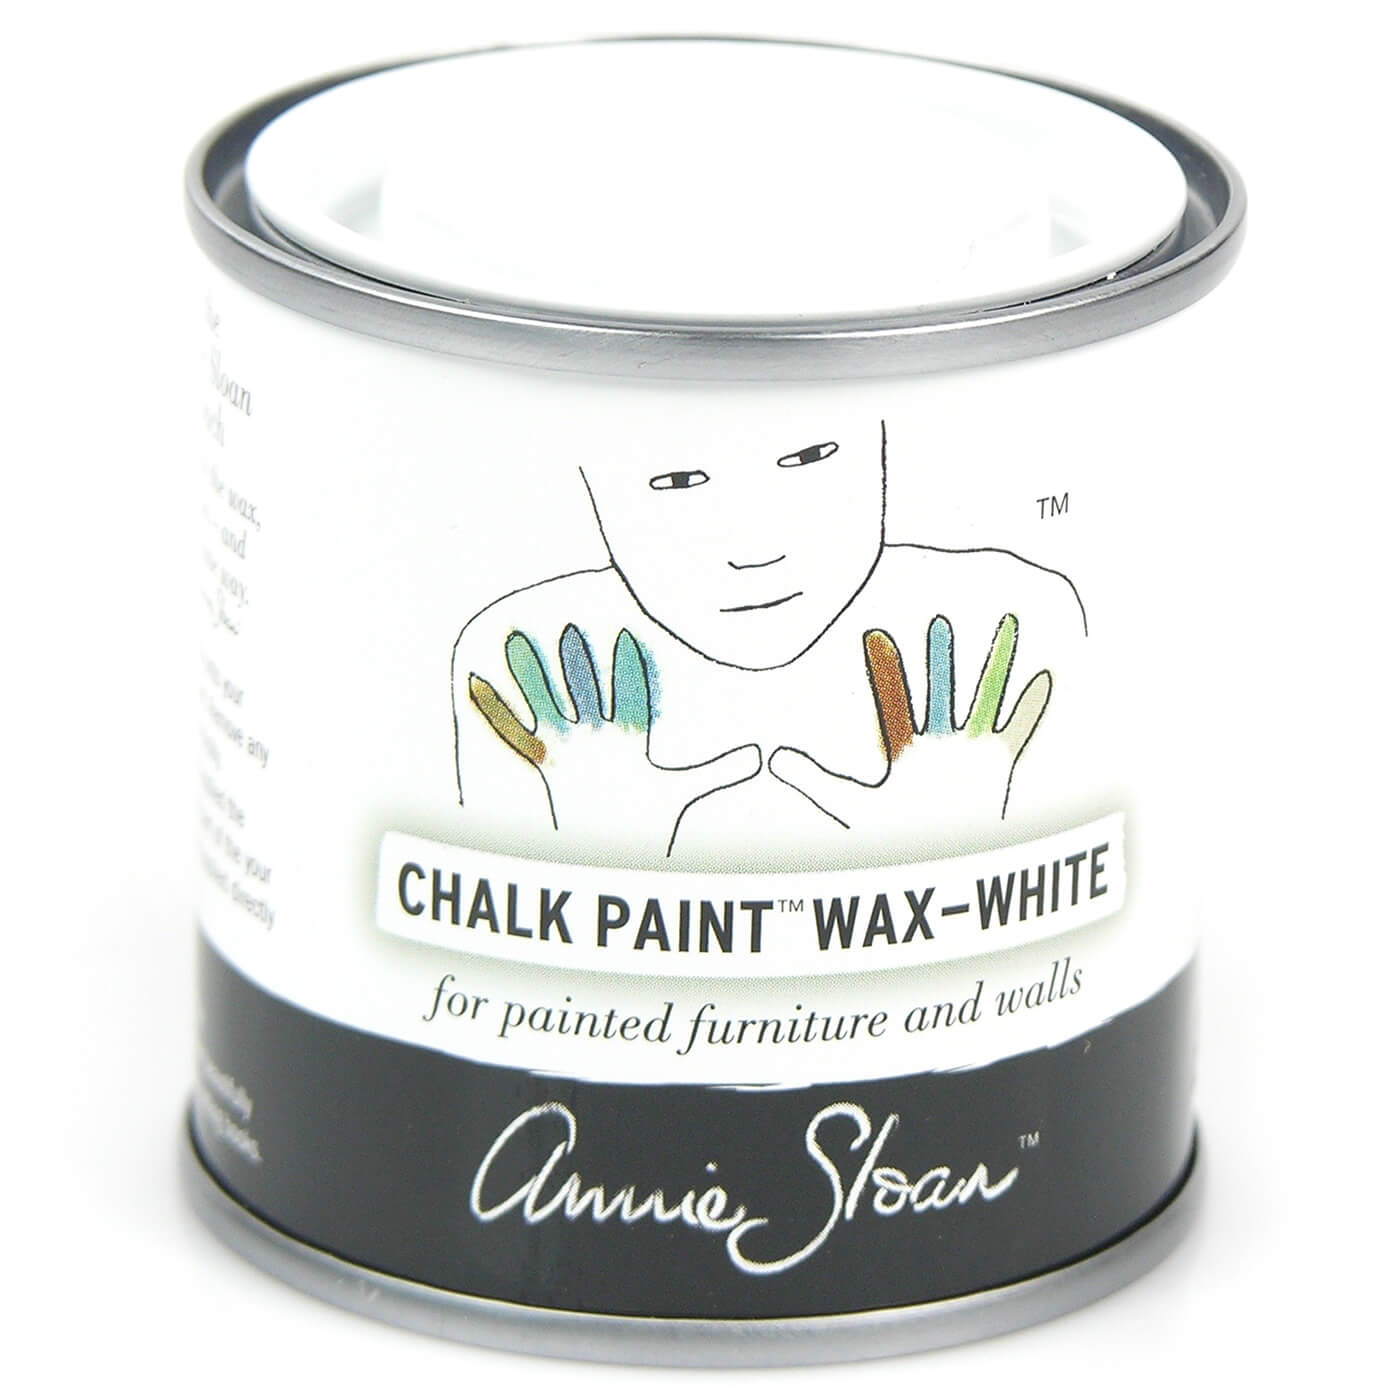 soft wachs weiss 120ml wachse lack annie sloan chalk paint selbermachen dekowebshop. Black Bedroom Furniture Sets. Home Design Ideas